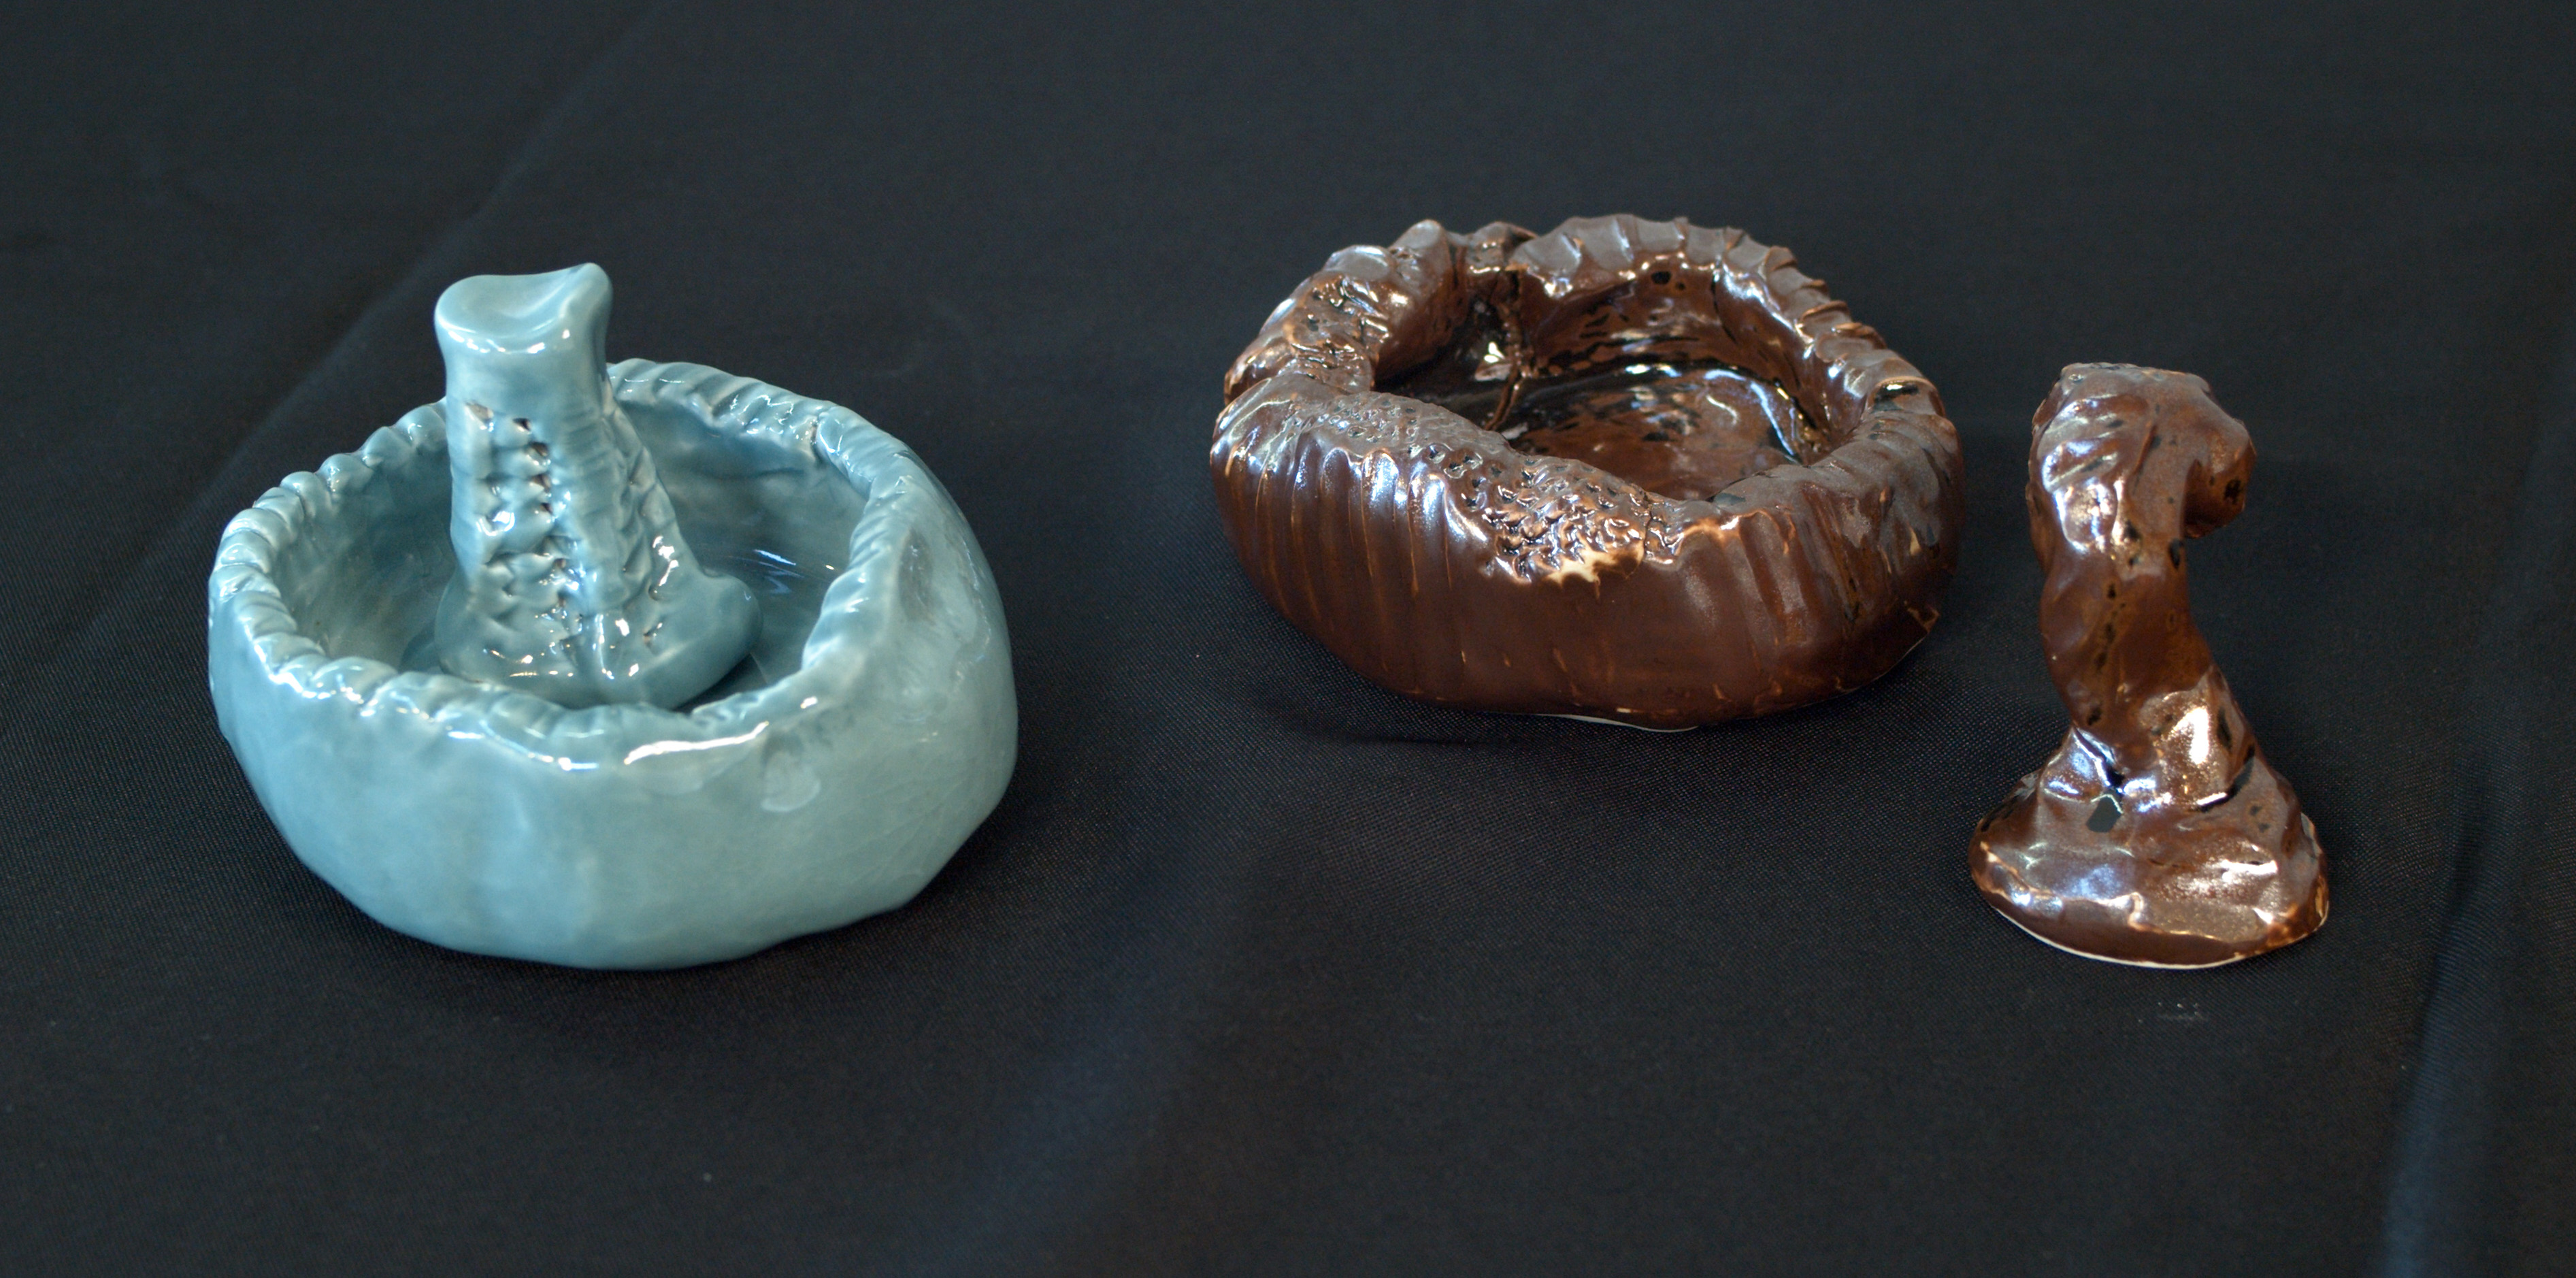 Blue and brown glazed oblong and round mortar and pestle sets